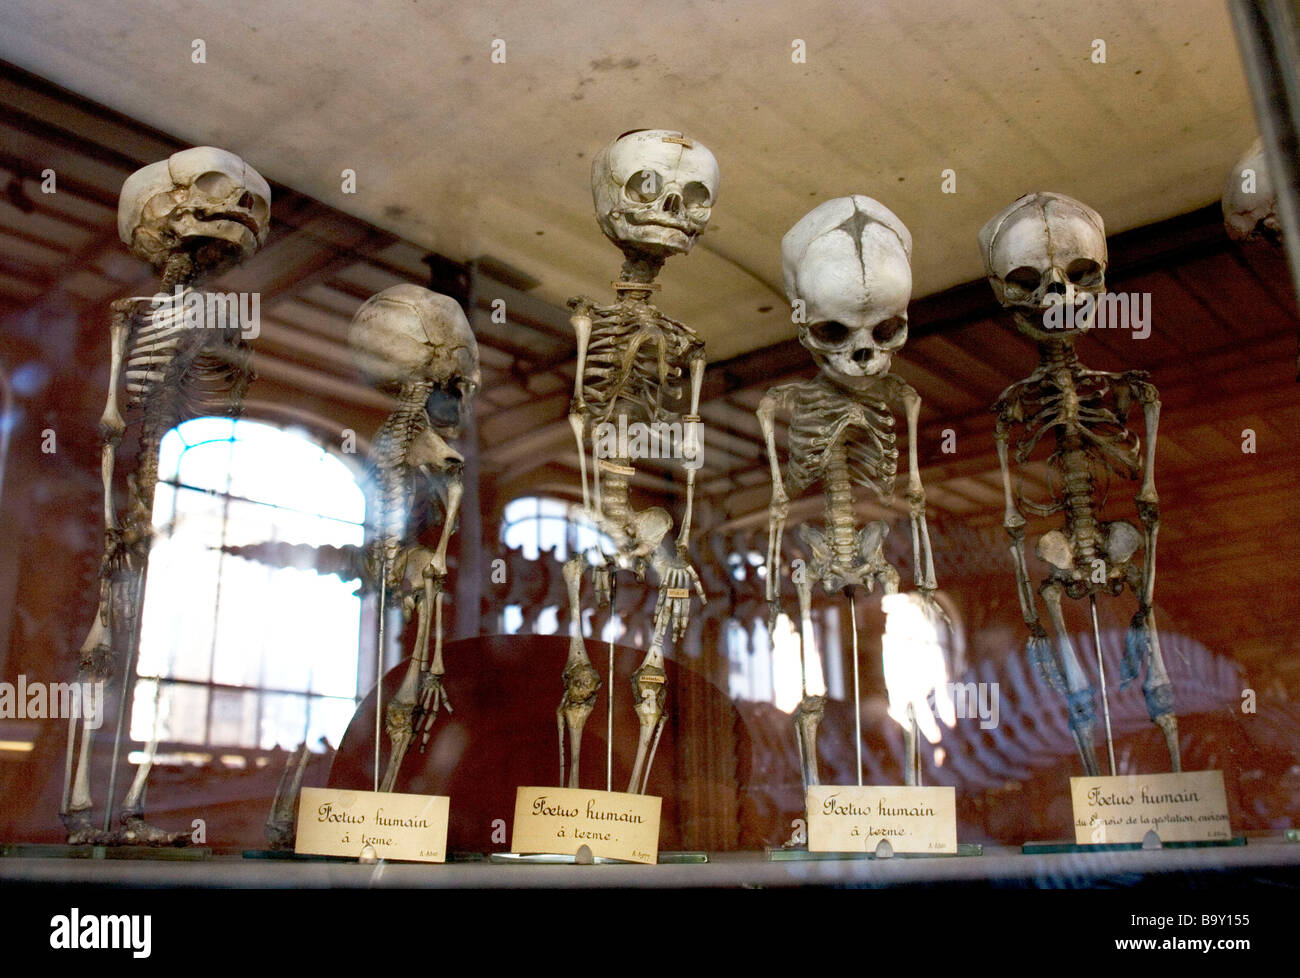 Skeletons of unborn babies on display at the Museum of Natural History in Paris, France - Stock Image